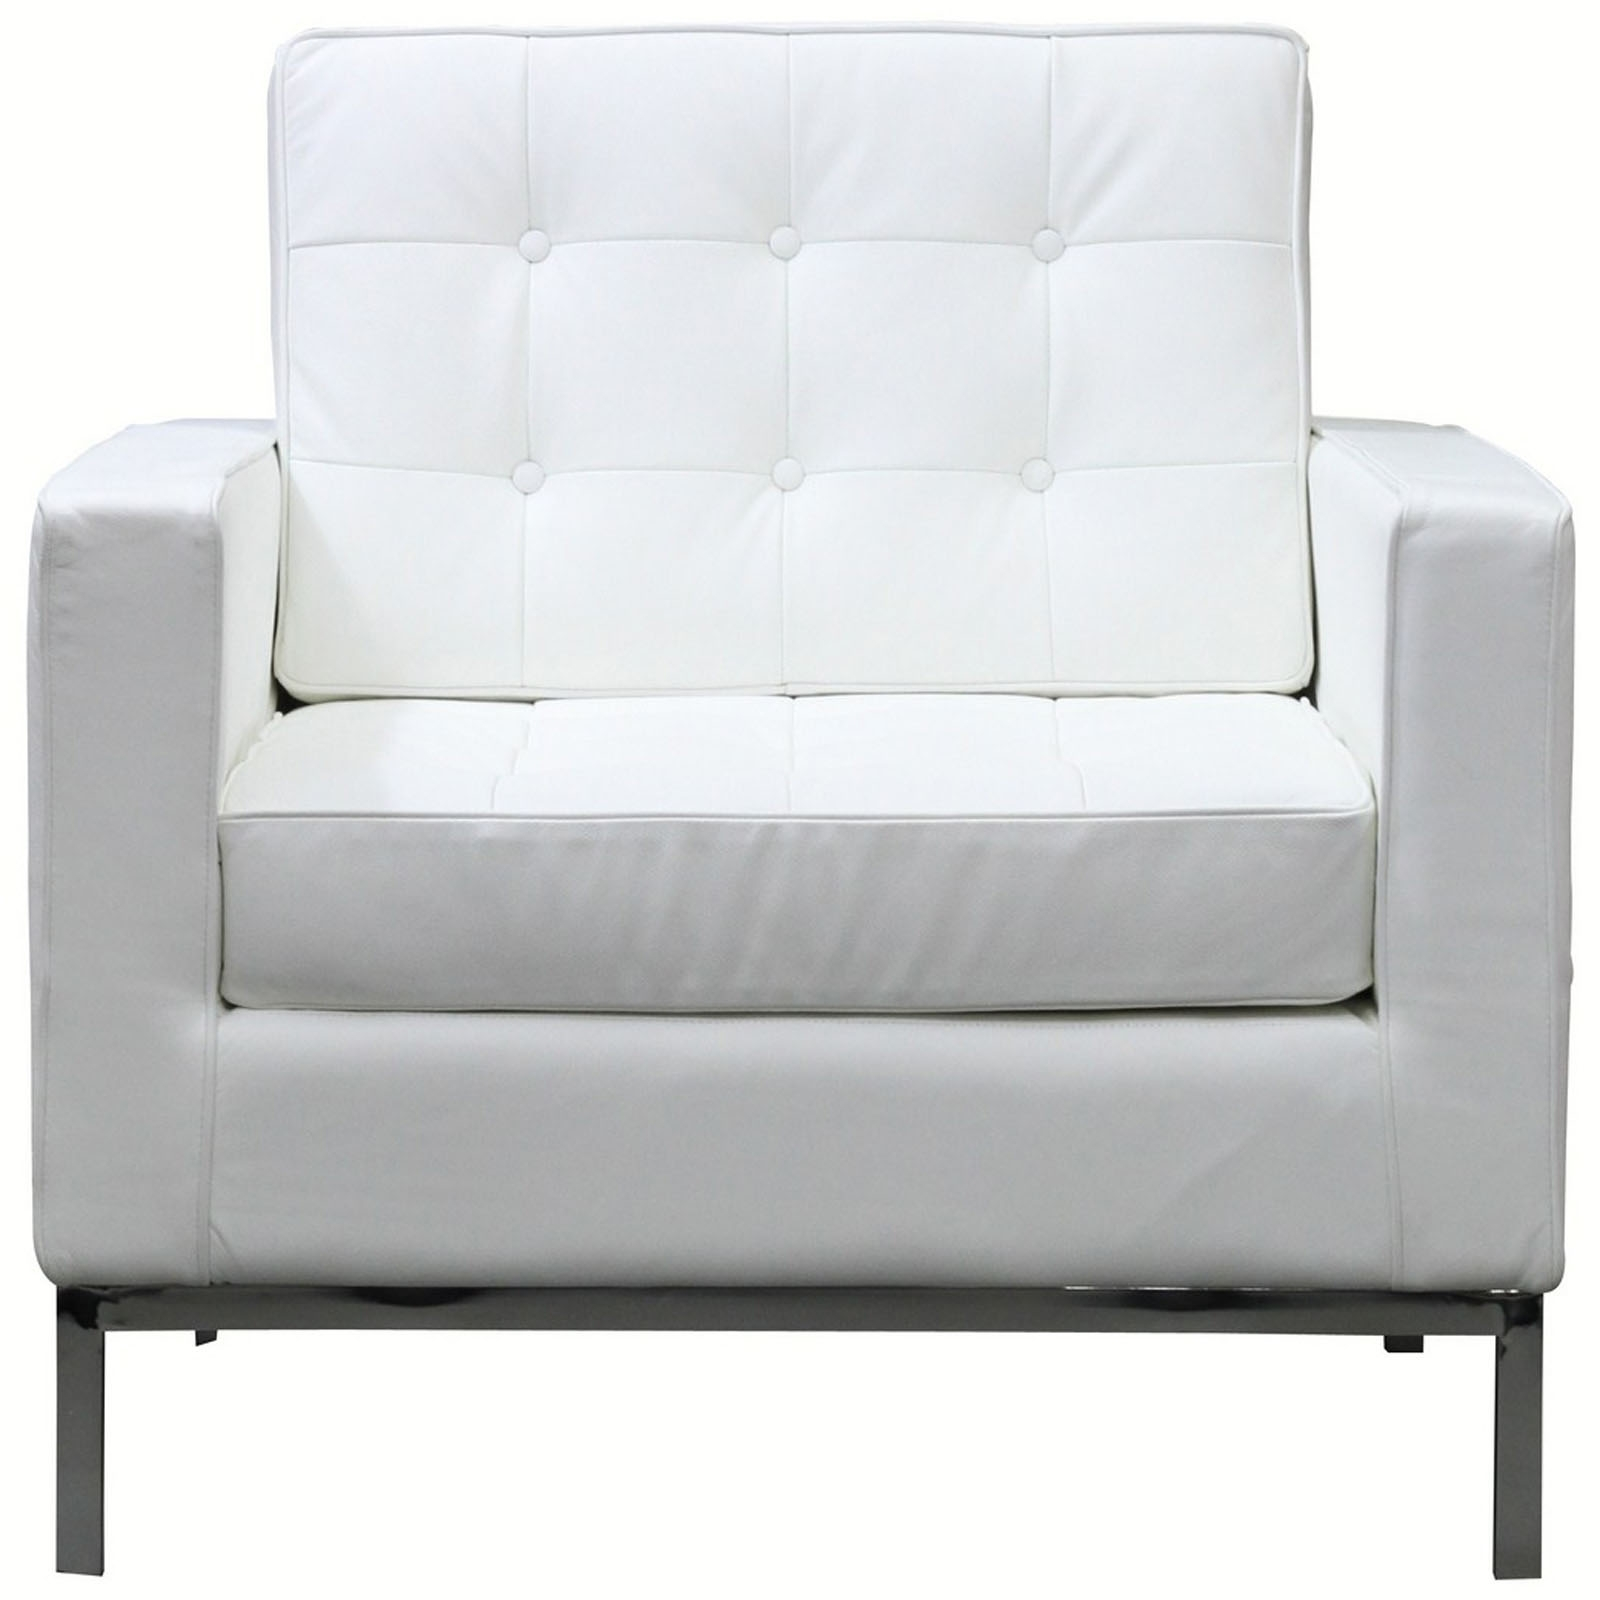 White Sofa Chair Upholstered Tufted Leather Armchair With Four Metal Legs Construct Furniture Questions Unique Sets Design Ideas For White Sofa Chairs (Image 15 of 15)